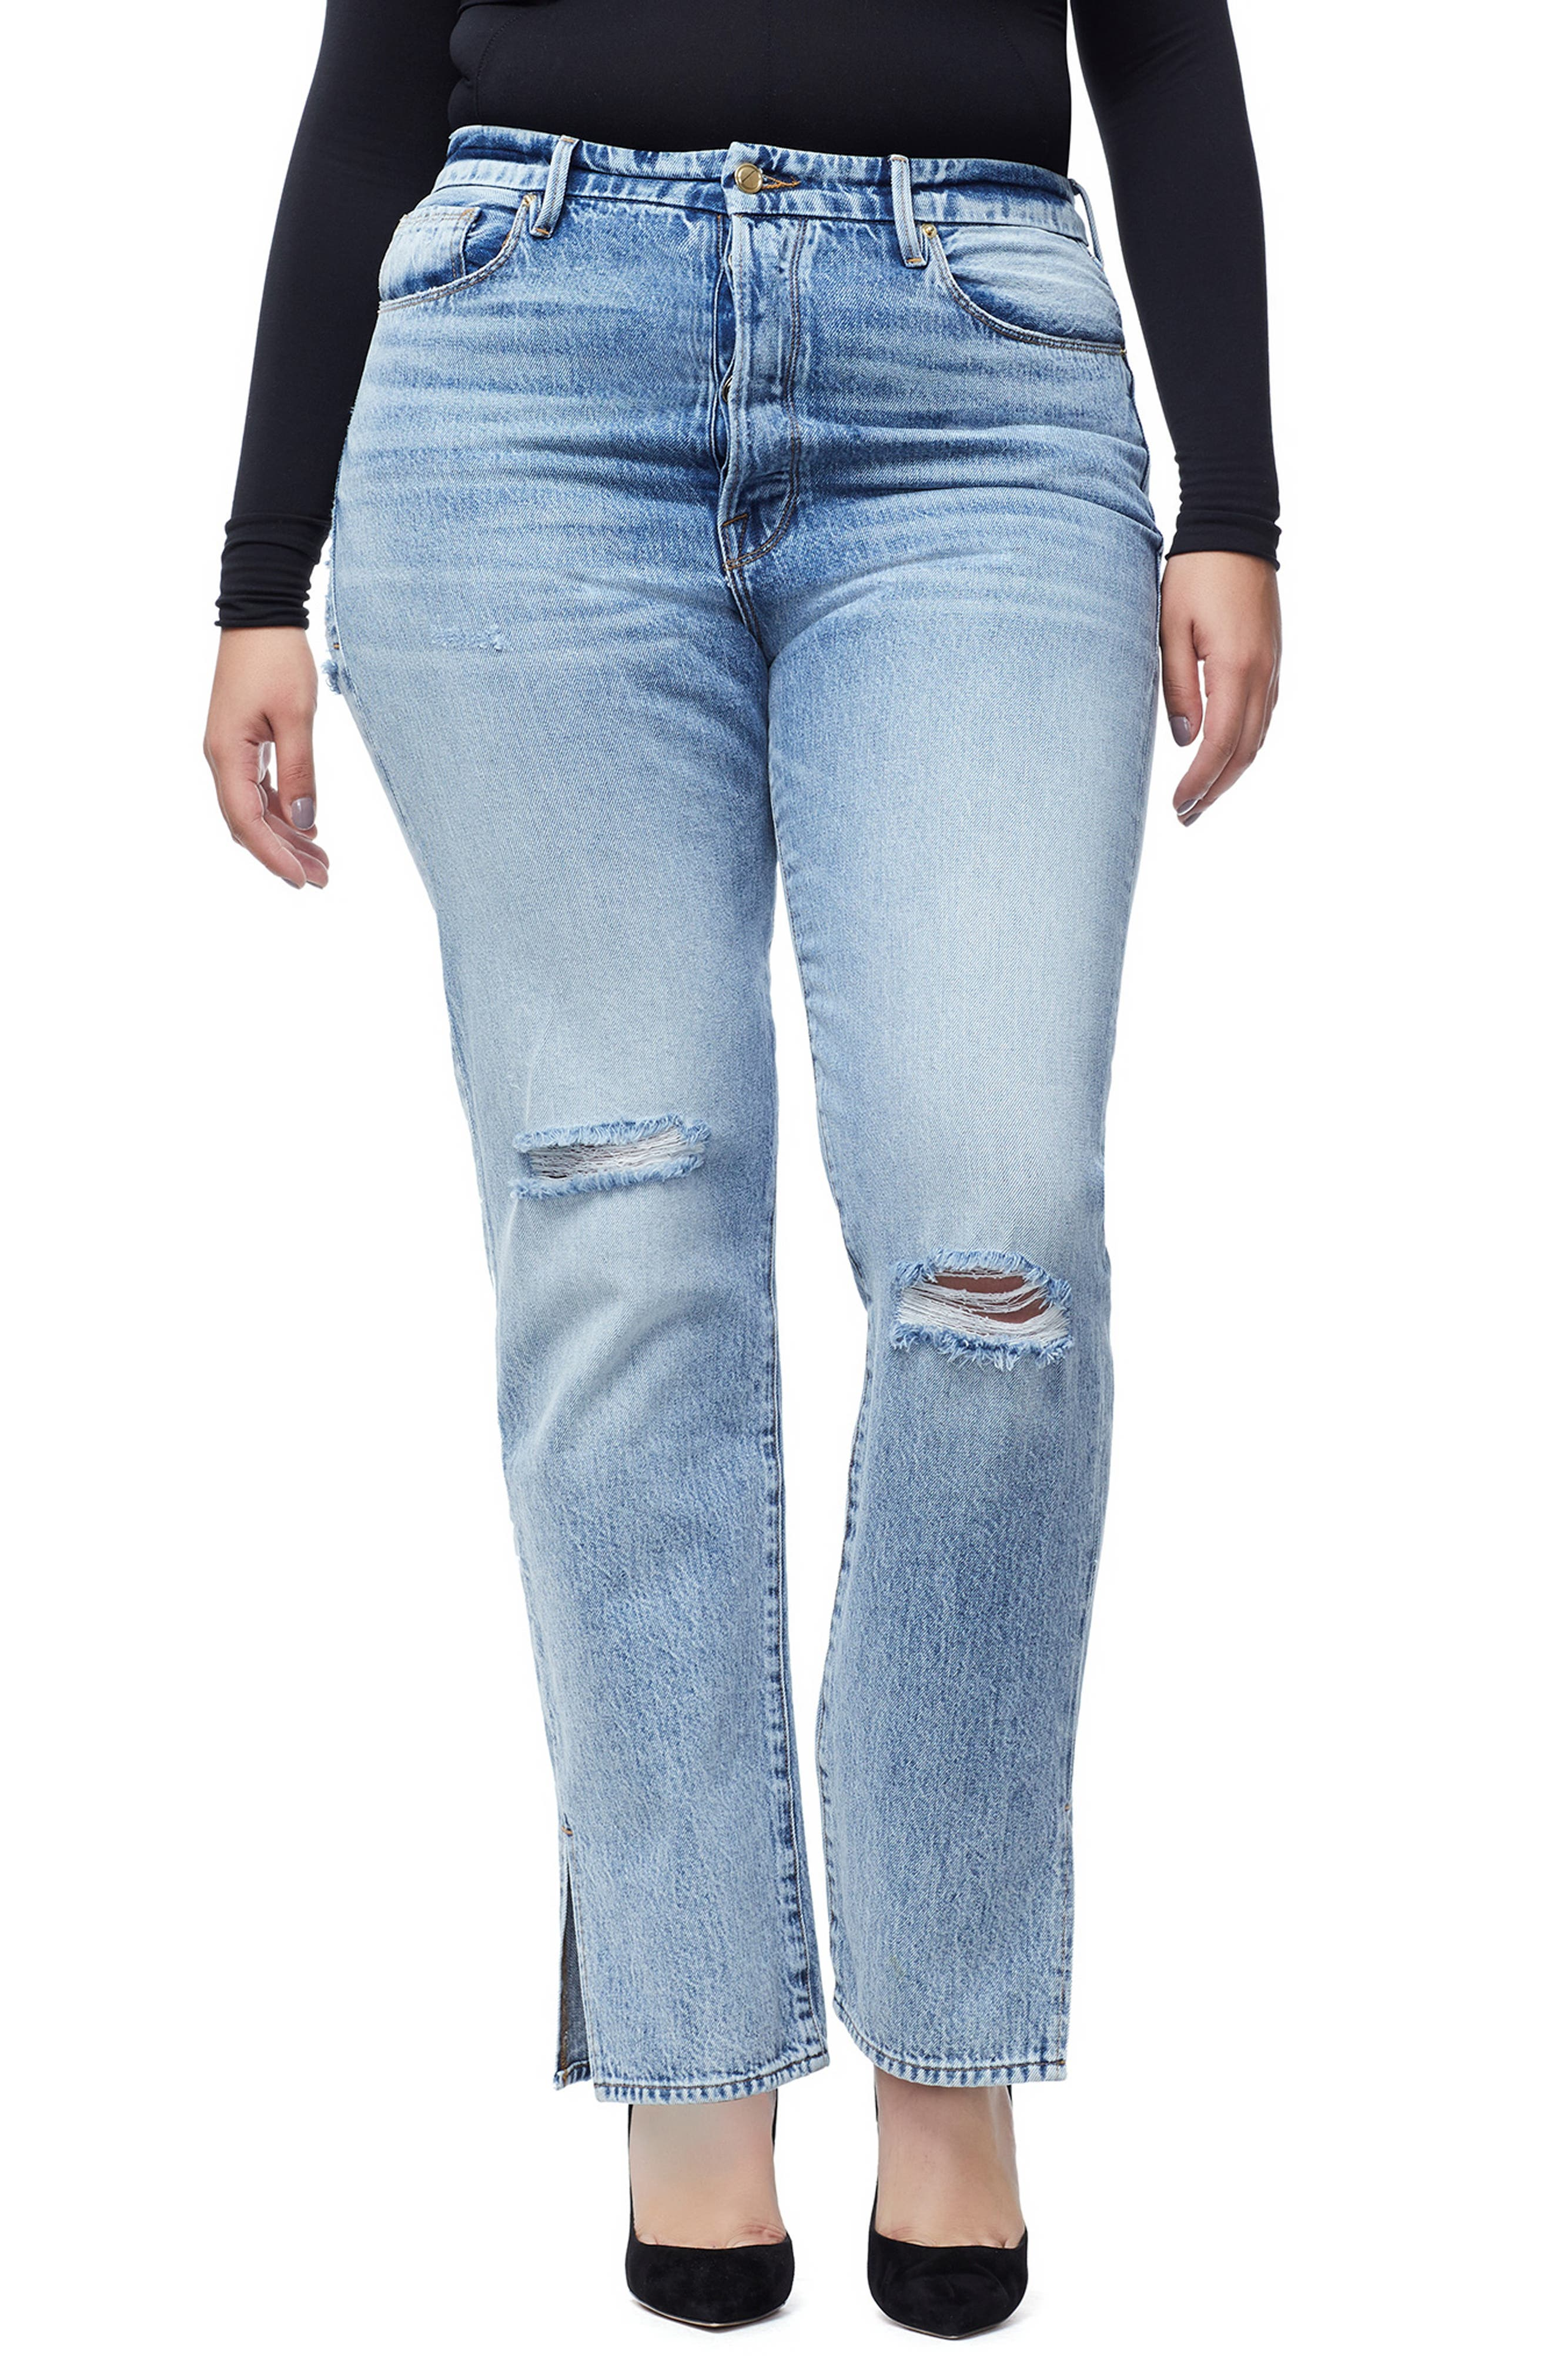 GOOD AMERICAN, Good Boy High Rise Ripped Boyfriend Jeans, Alternate thumbnail 2, color, BLUE 177